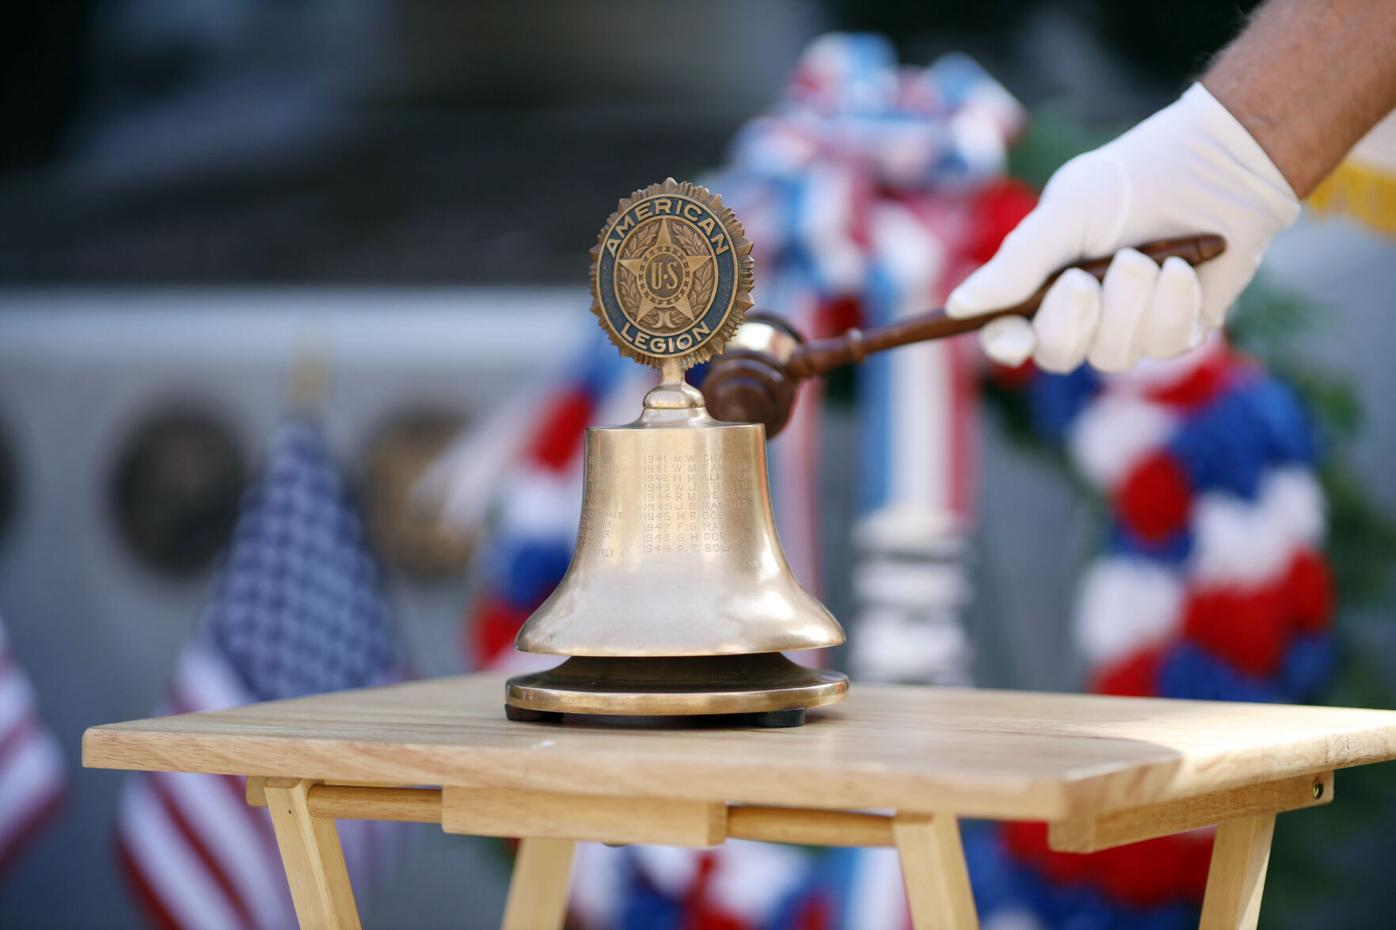 small memorial bell hit with mallet